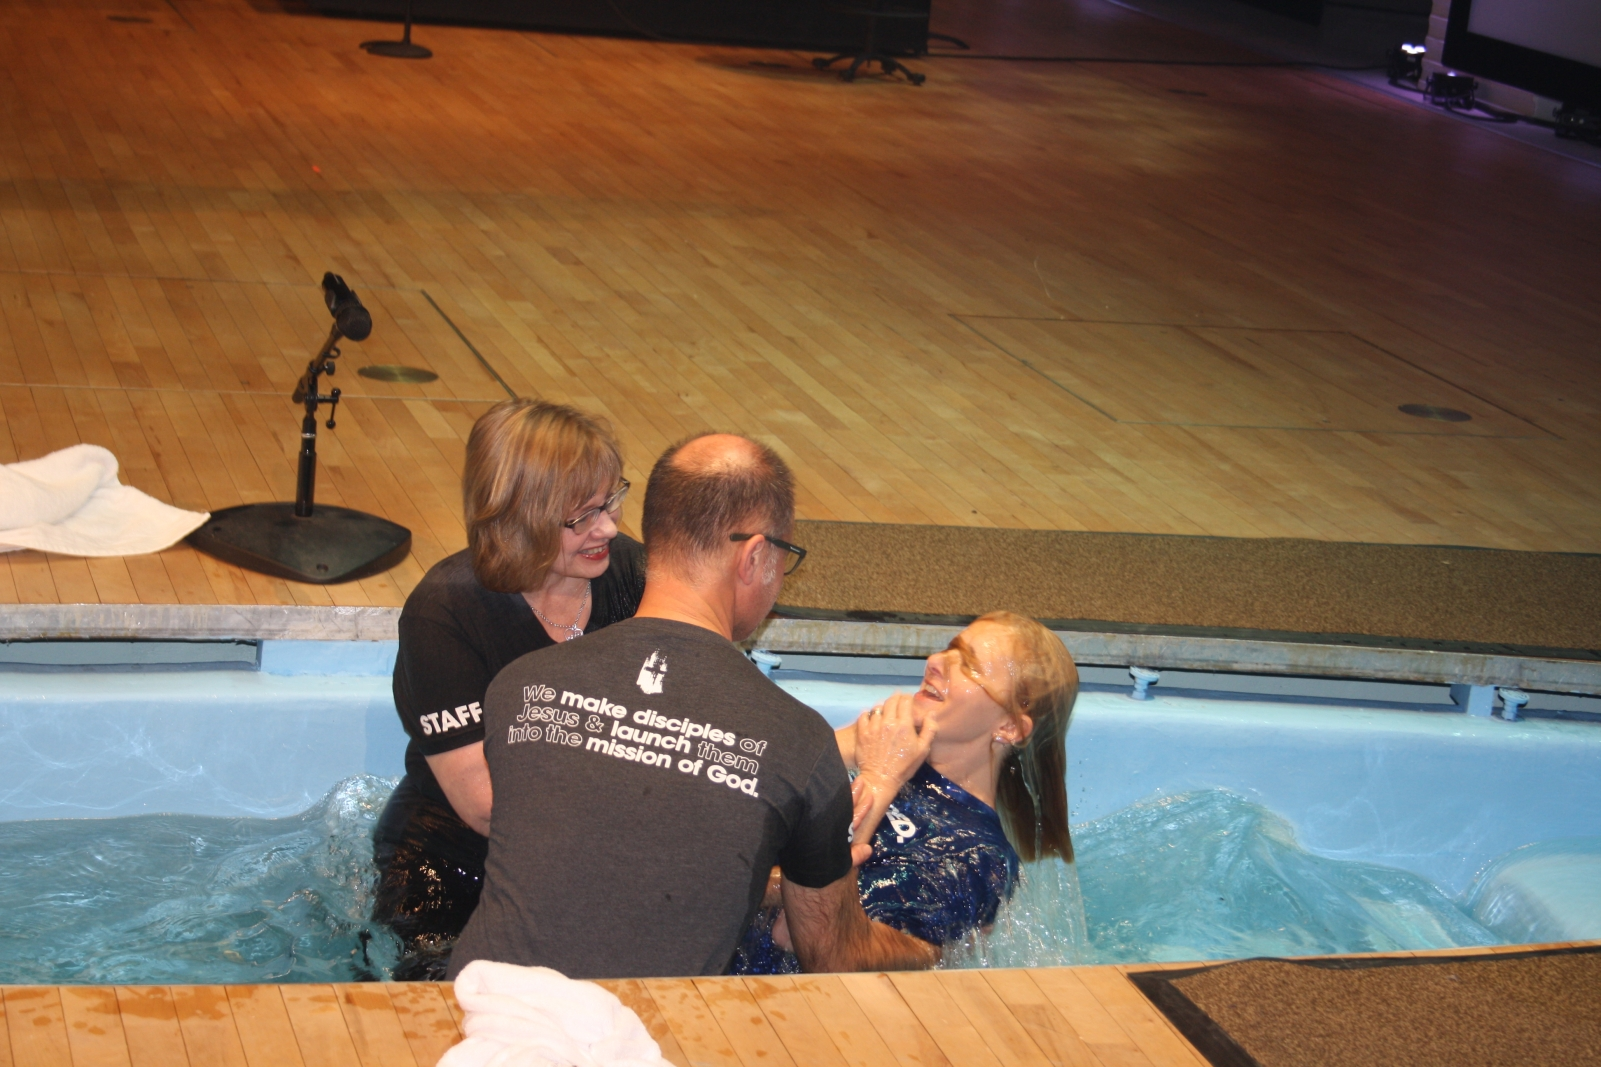 Surrender: Not My First Baptism